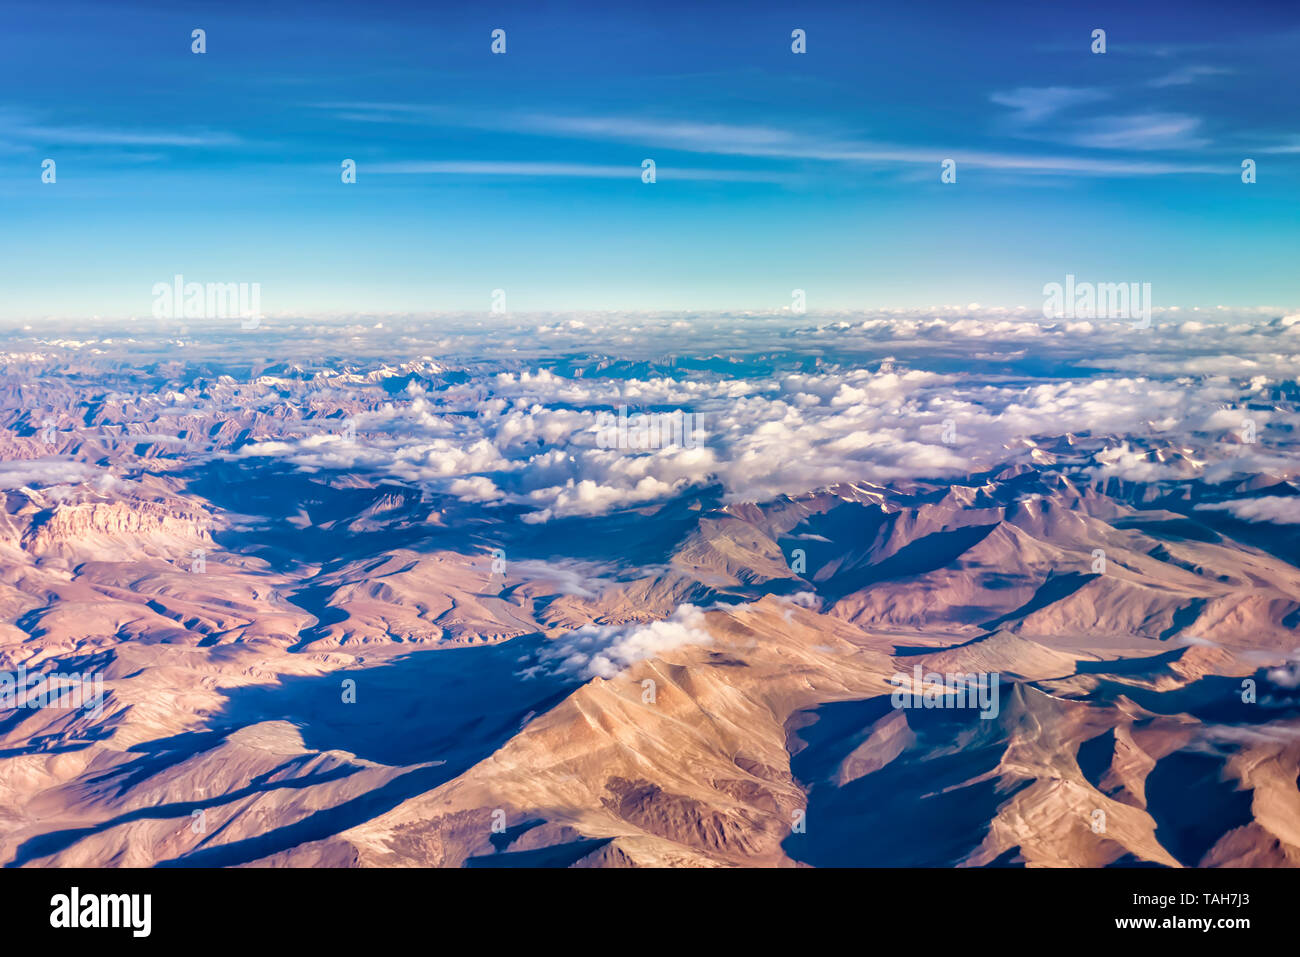 An aerial view of the barren mountains of the Zanskar range of inner Himalayas, India. Taken from a plane on an early July morning. - Stock Image